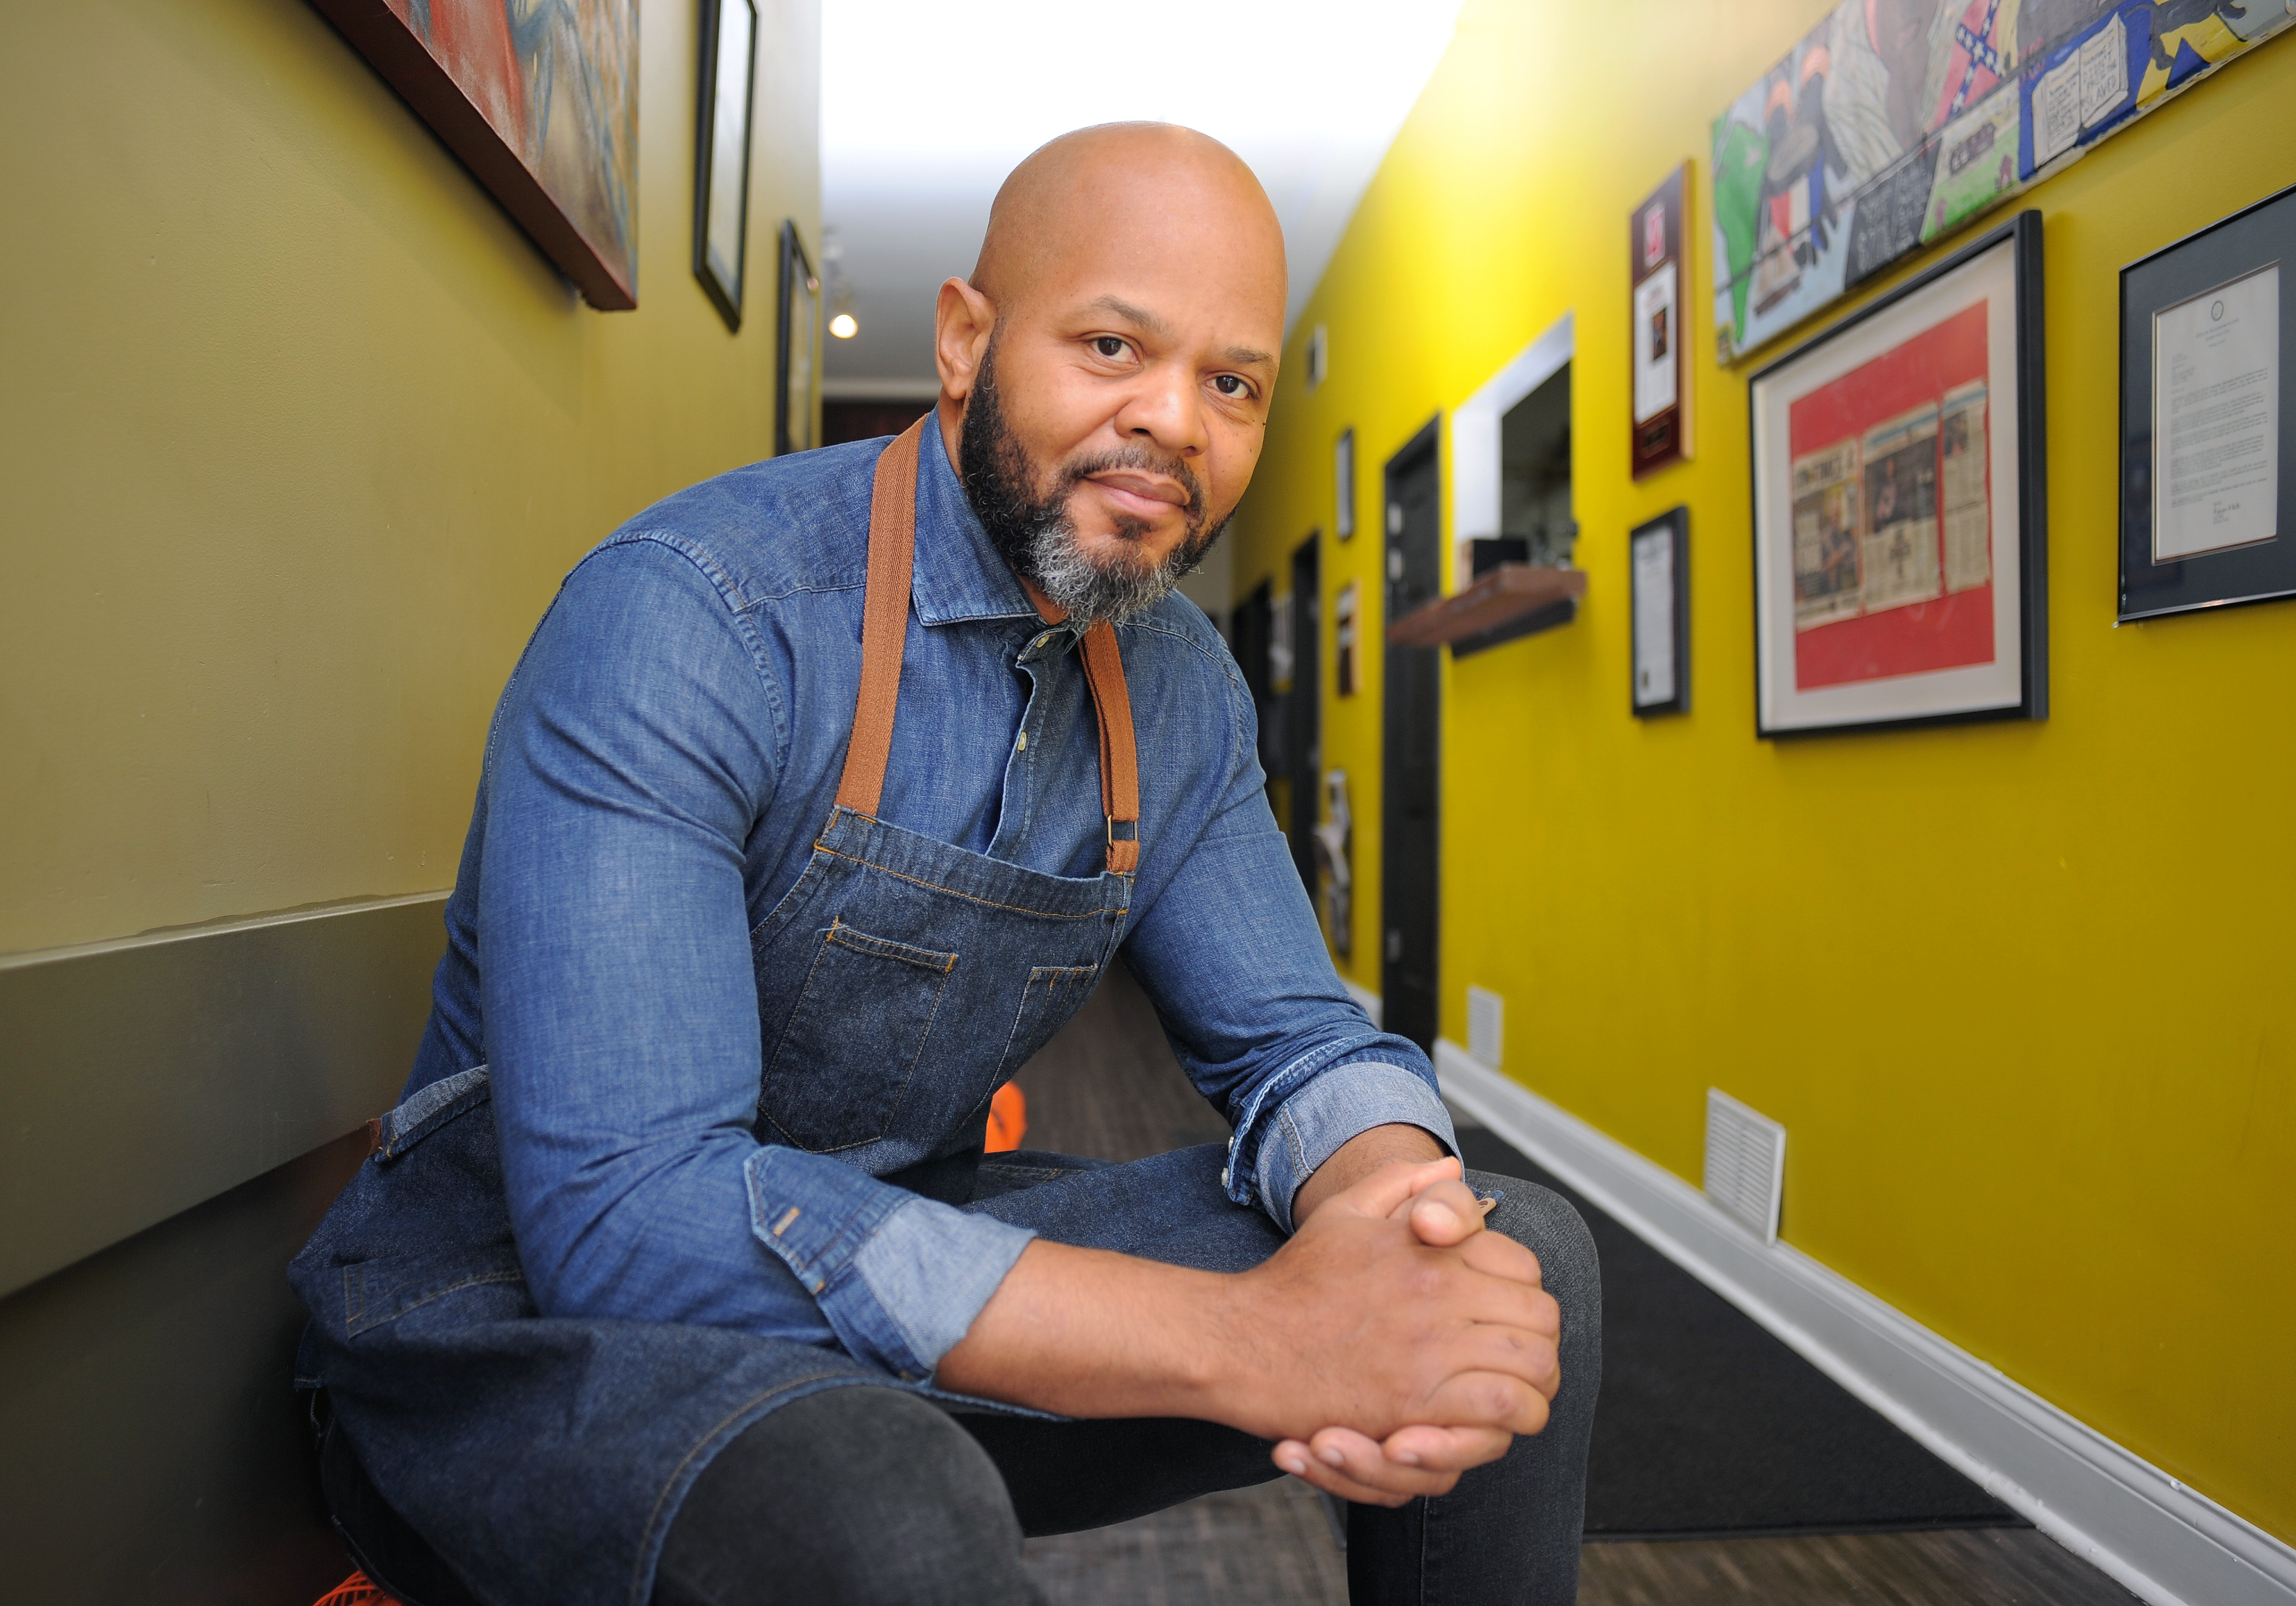 Chef/philanthropist Quentin Love is photographed at his Turkey Chop restaurant, located at Chicago's Humboldt Park neighborhood.